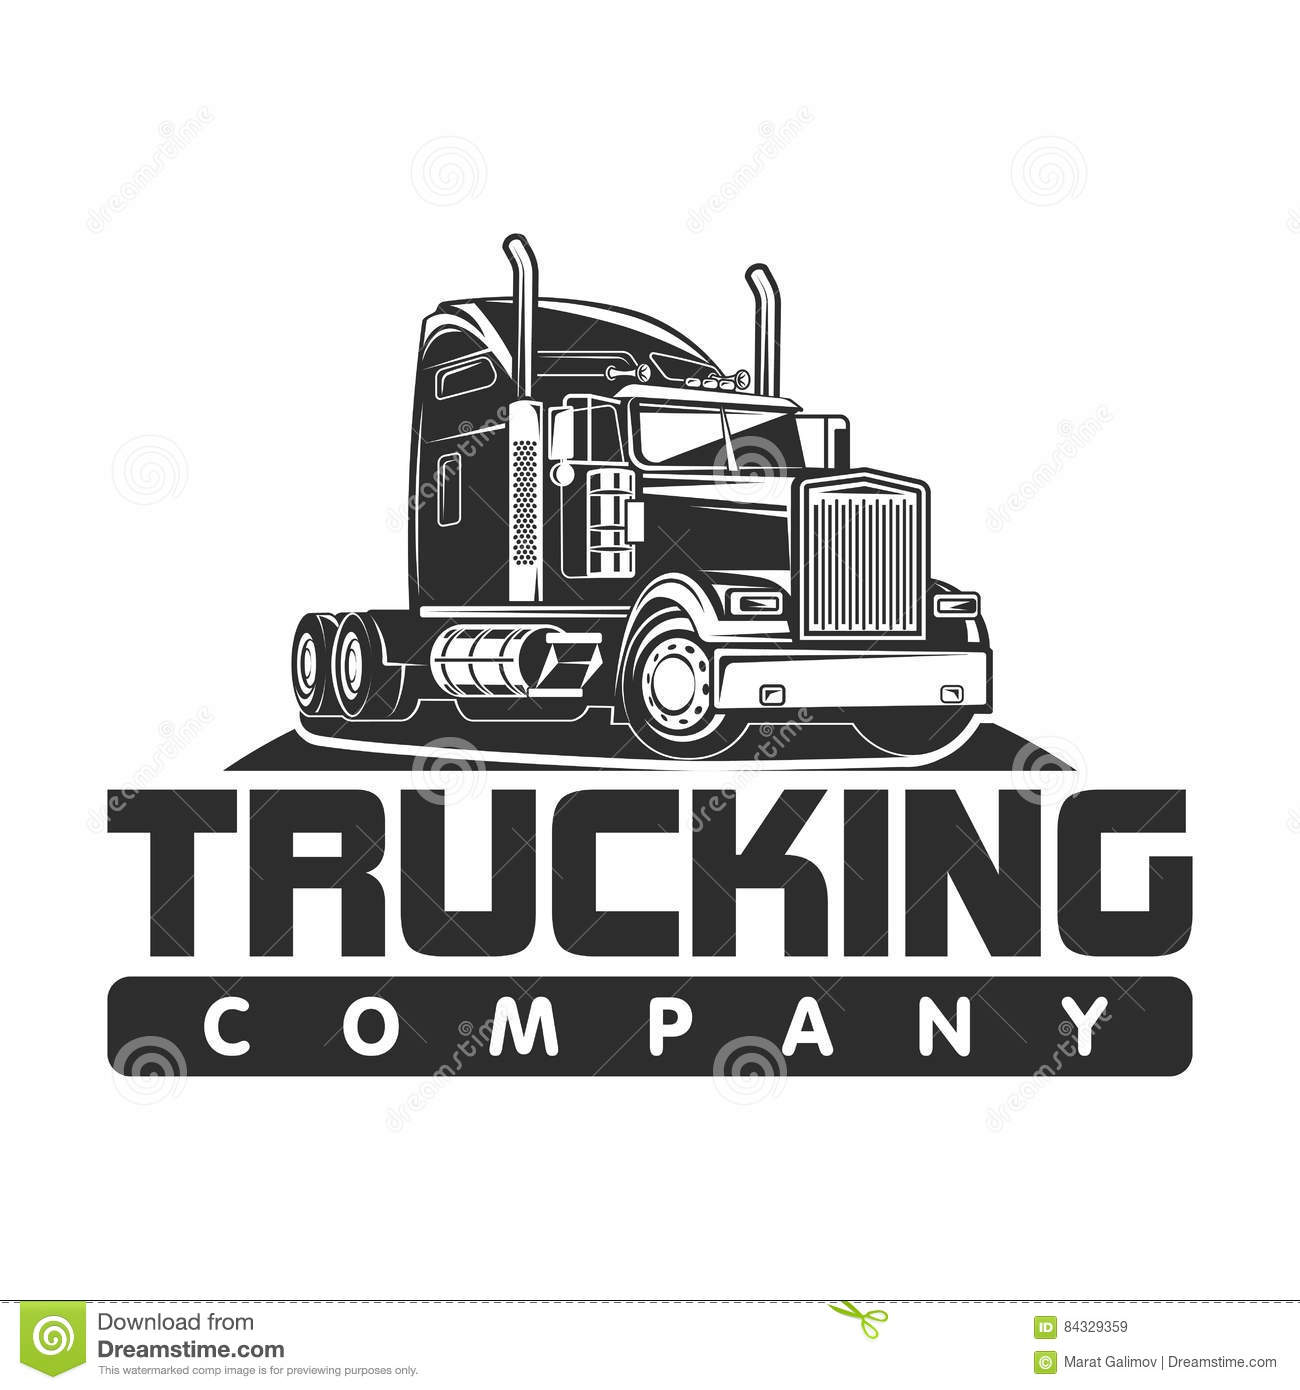 trucking company logo black and white vector illustration